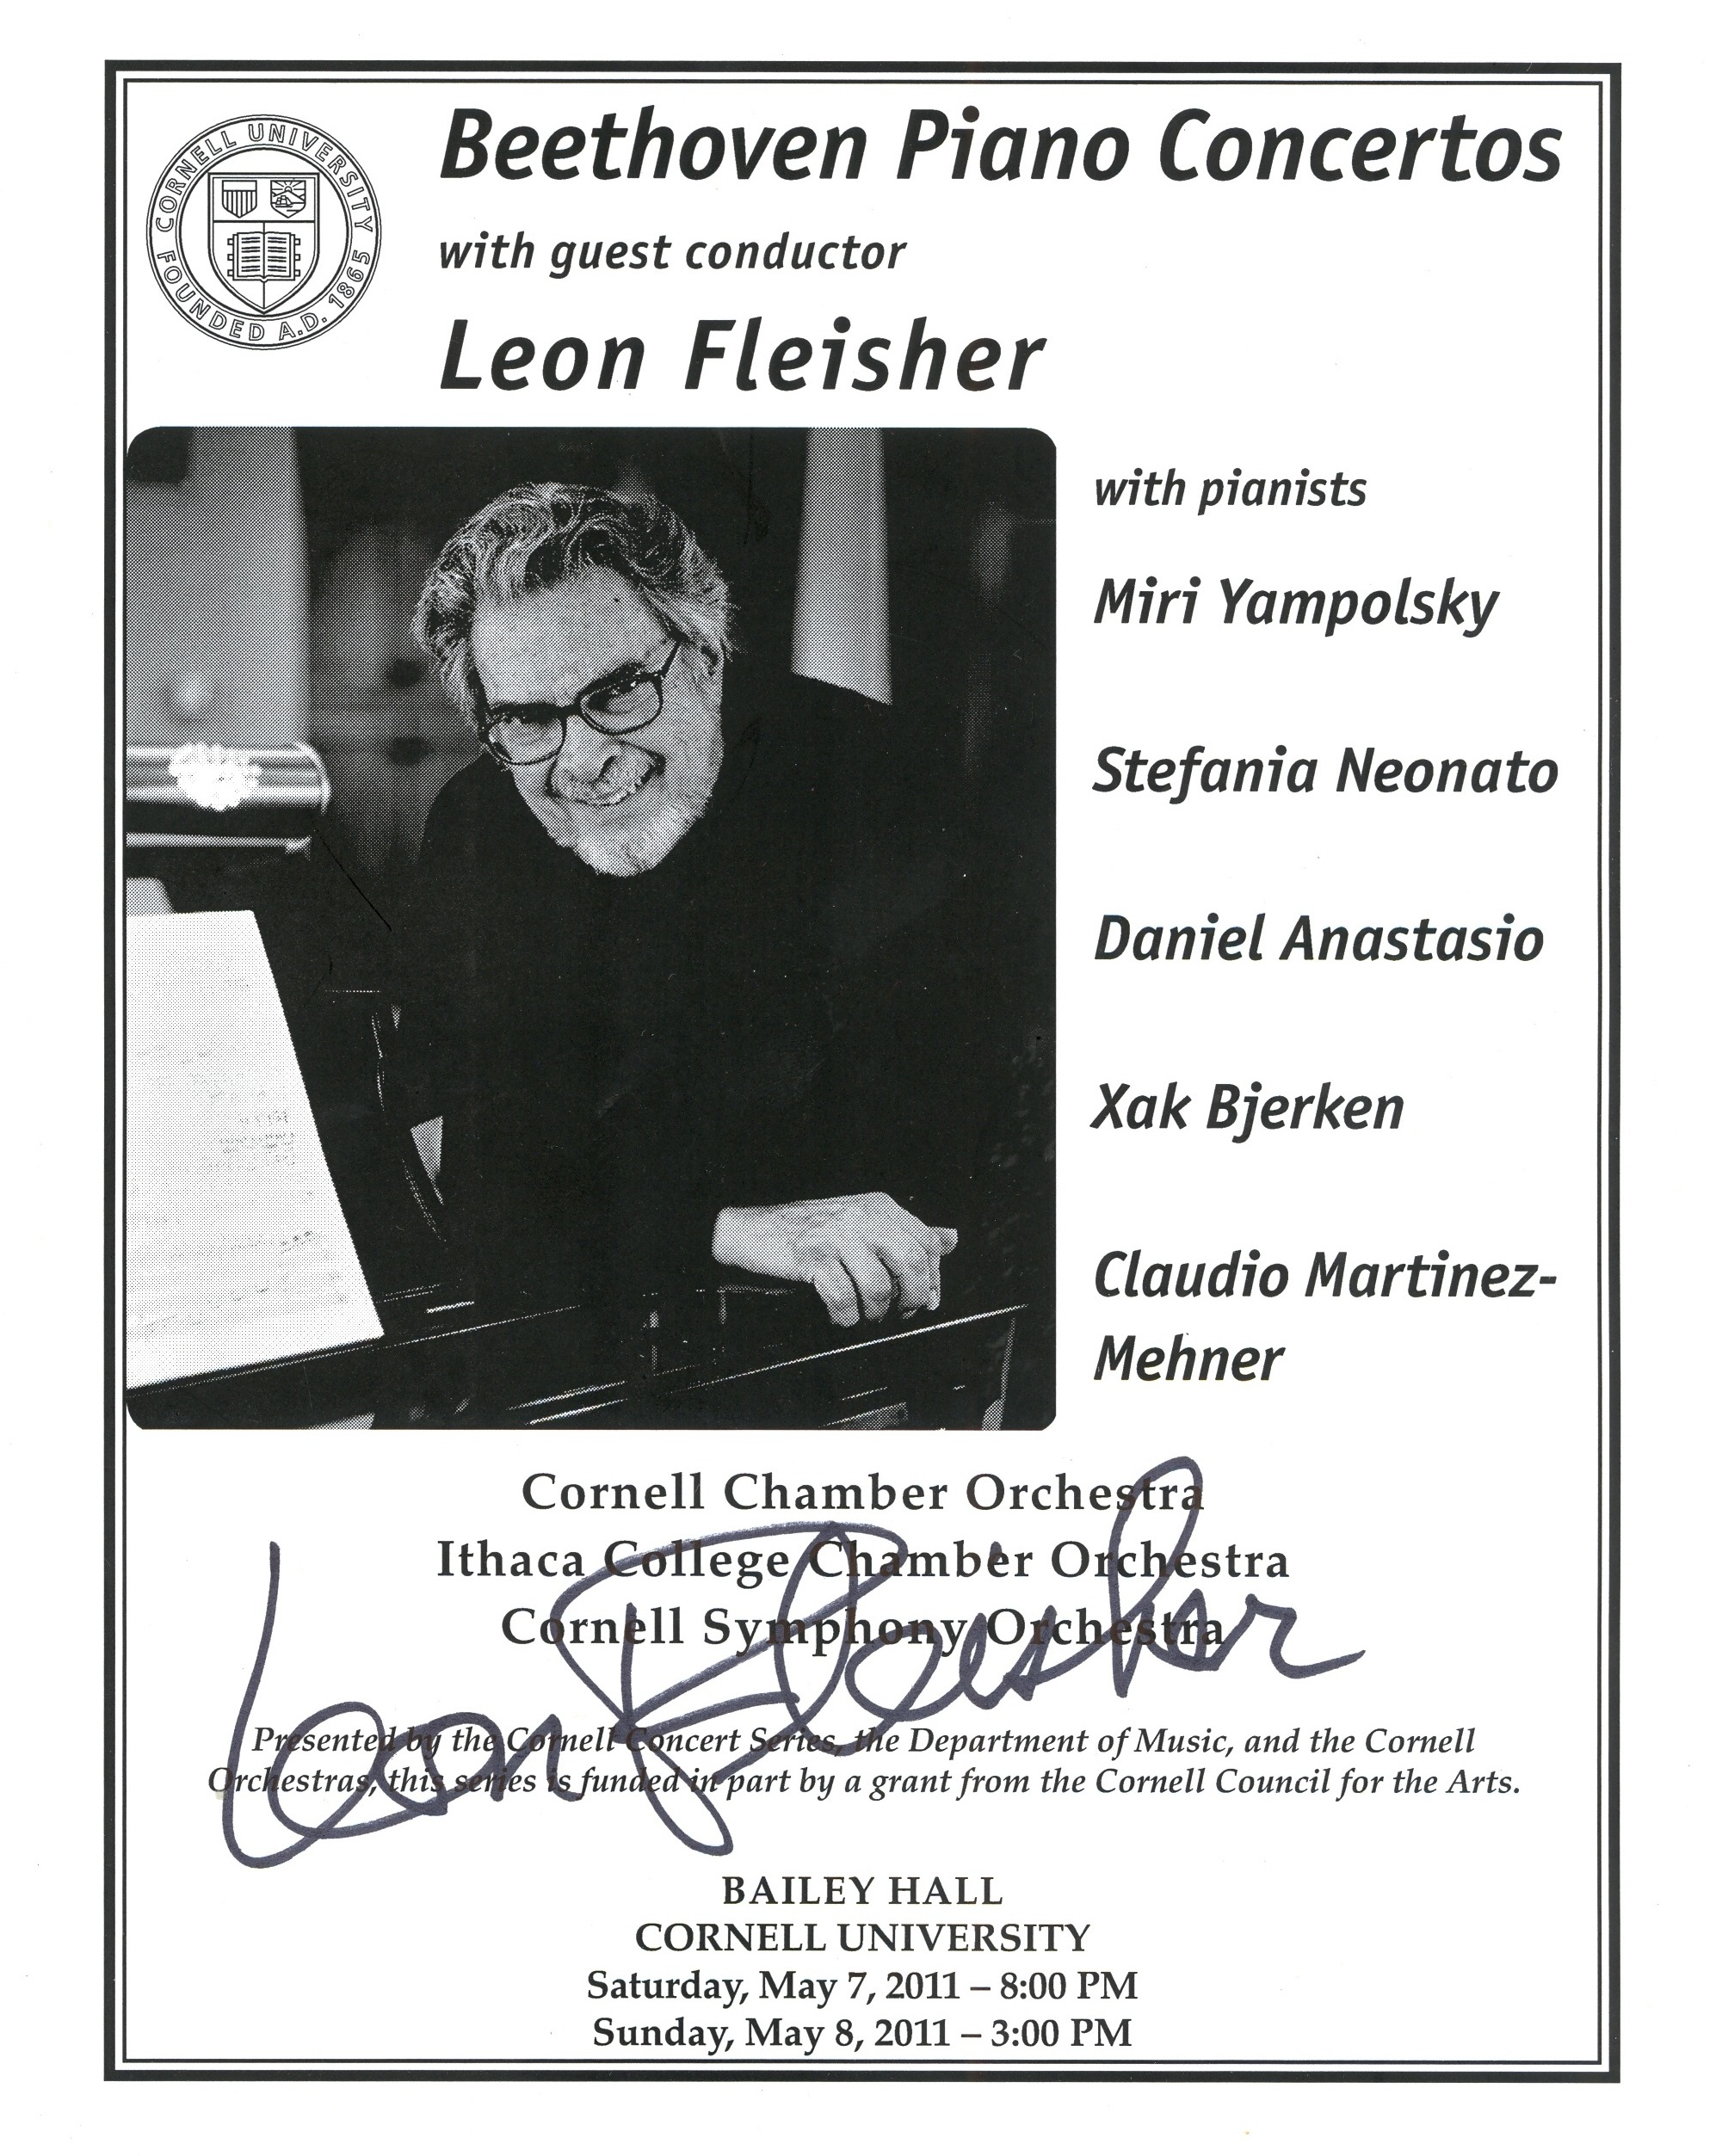 Program for Beethoven Piano Concertos with guest conductor Leon Fleisher